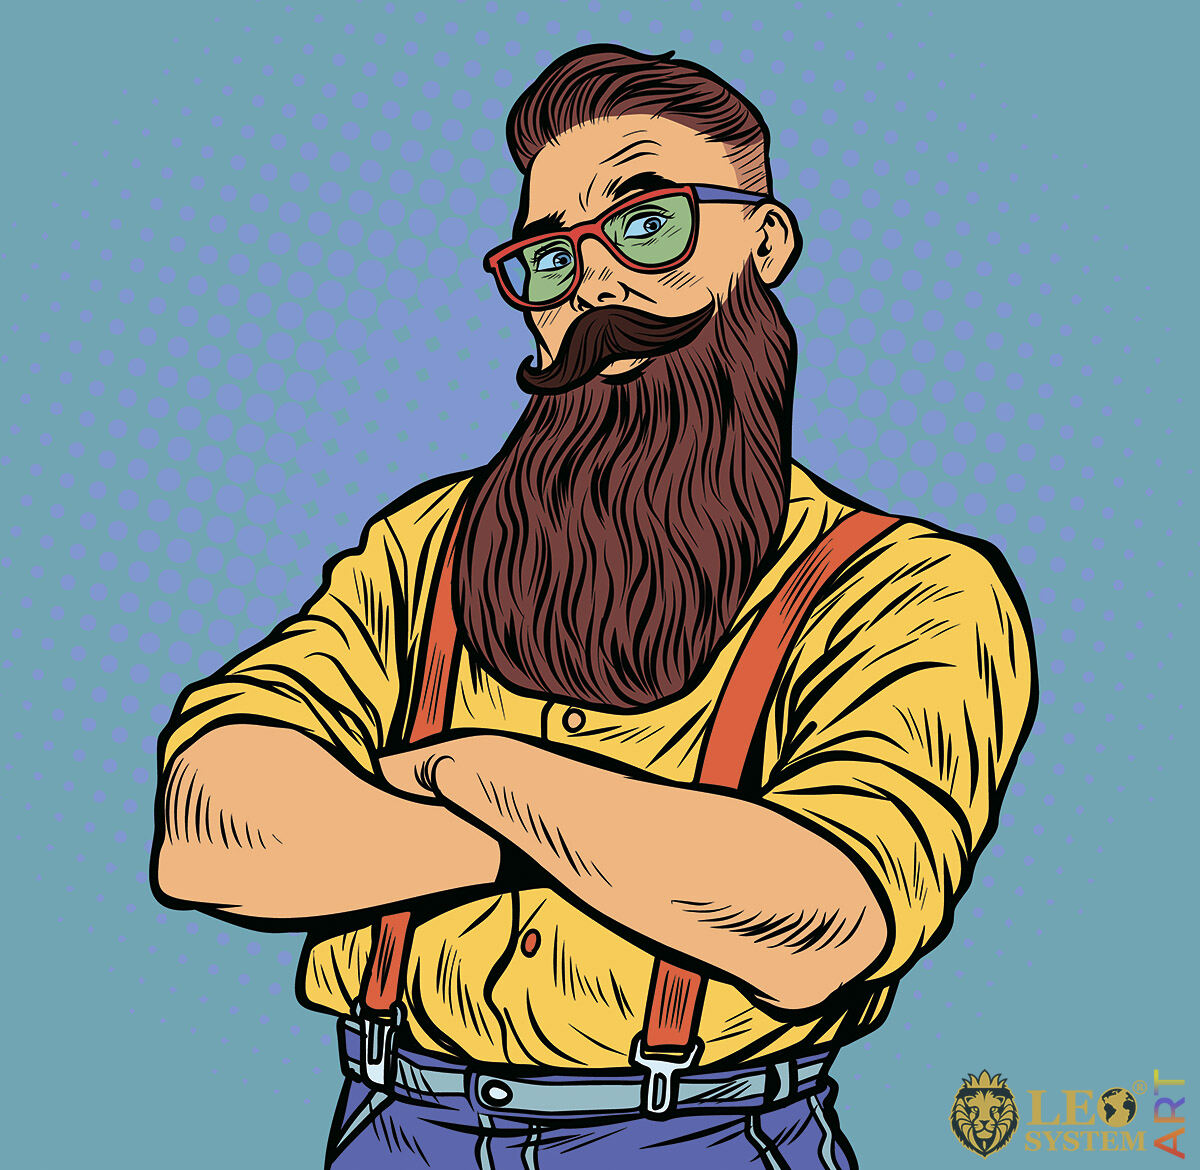 Cute man with long mustache and beard